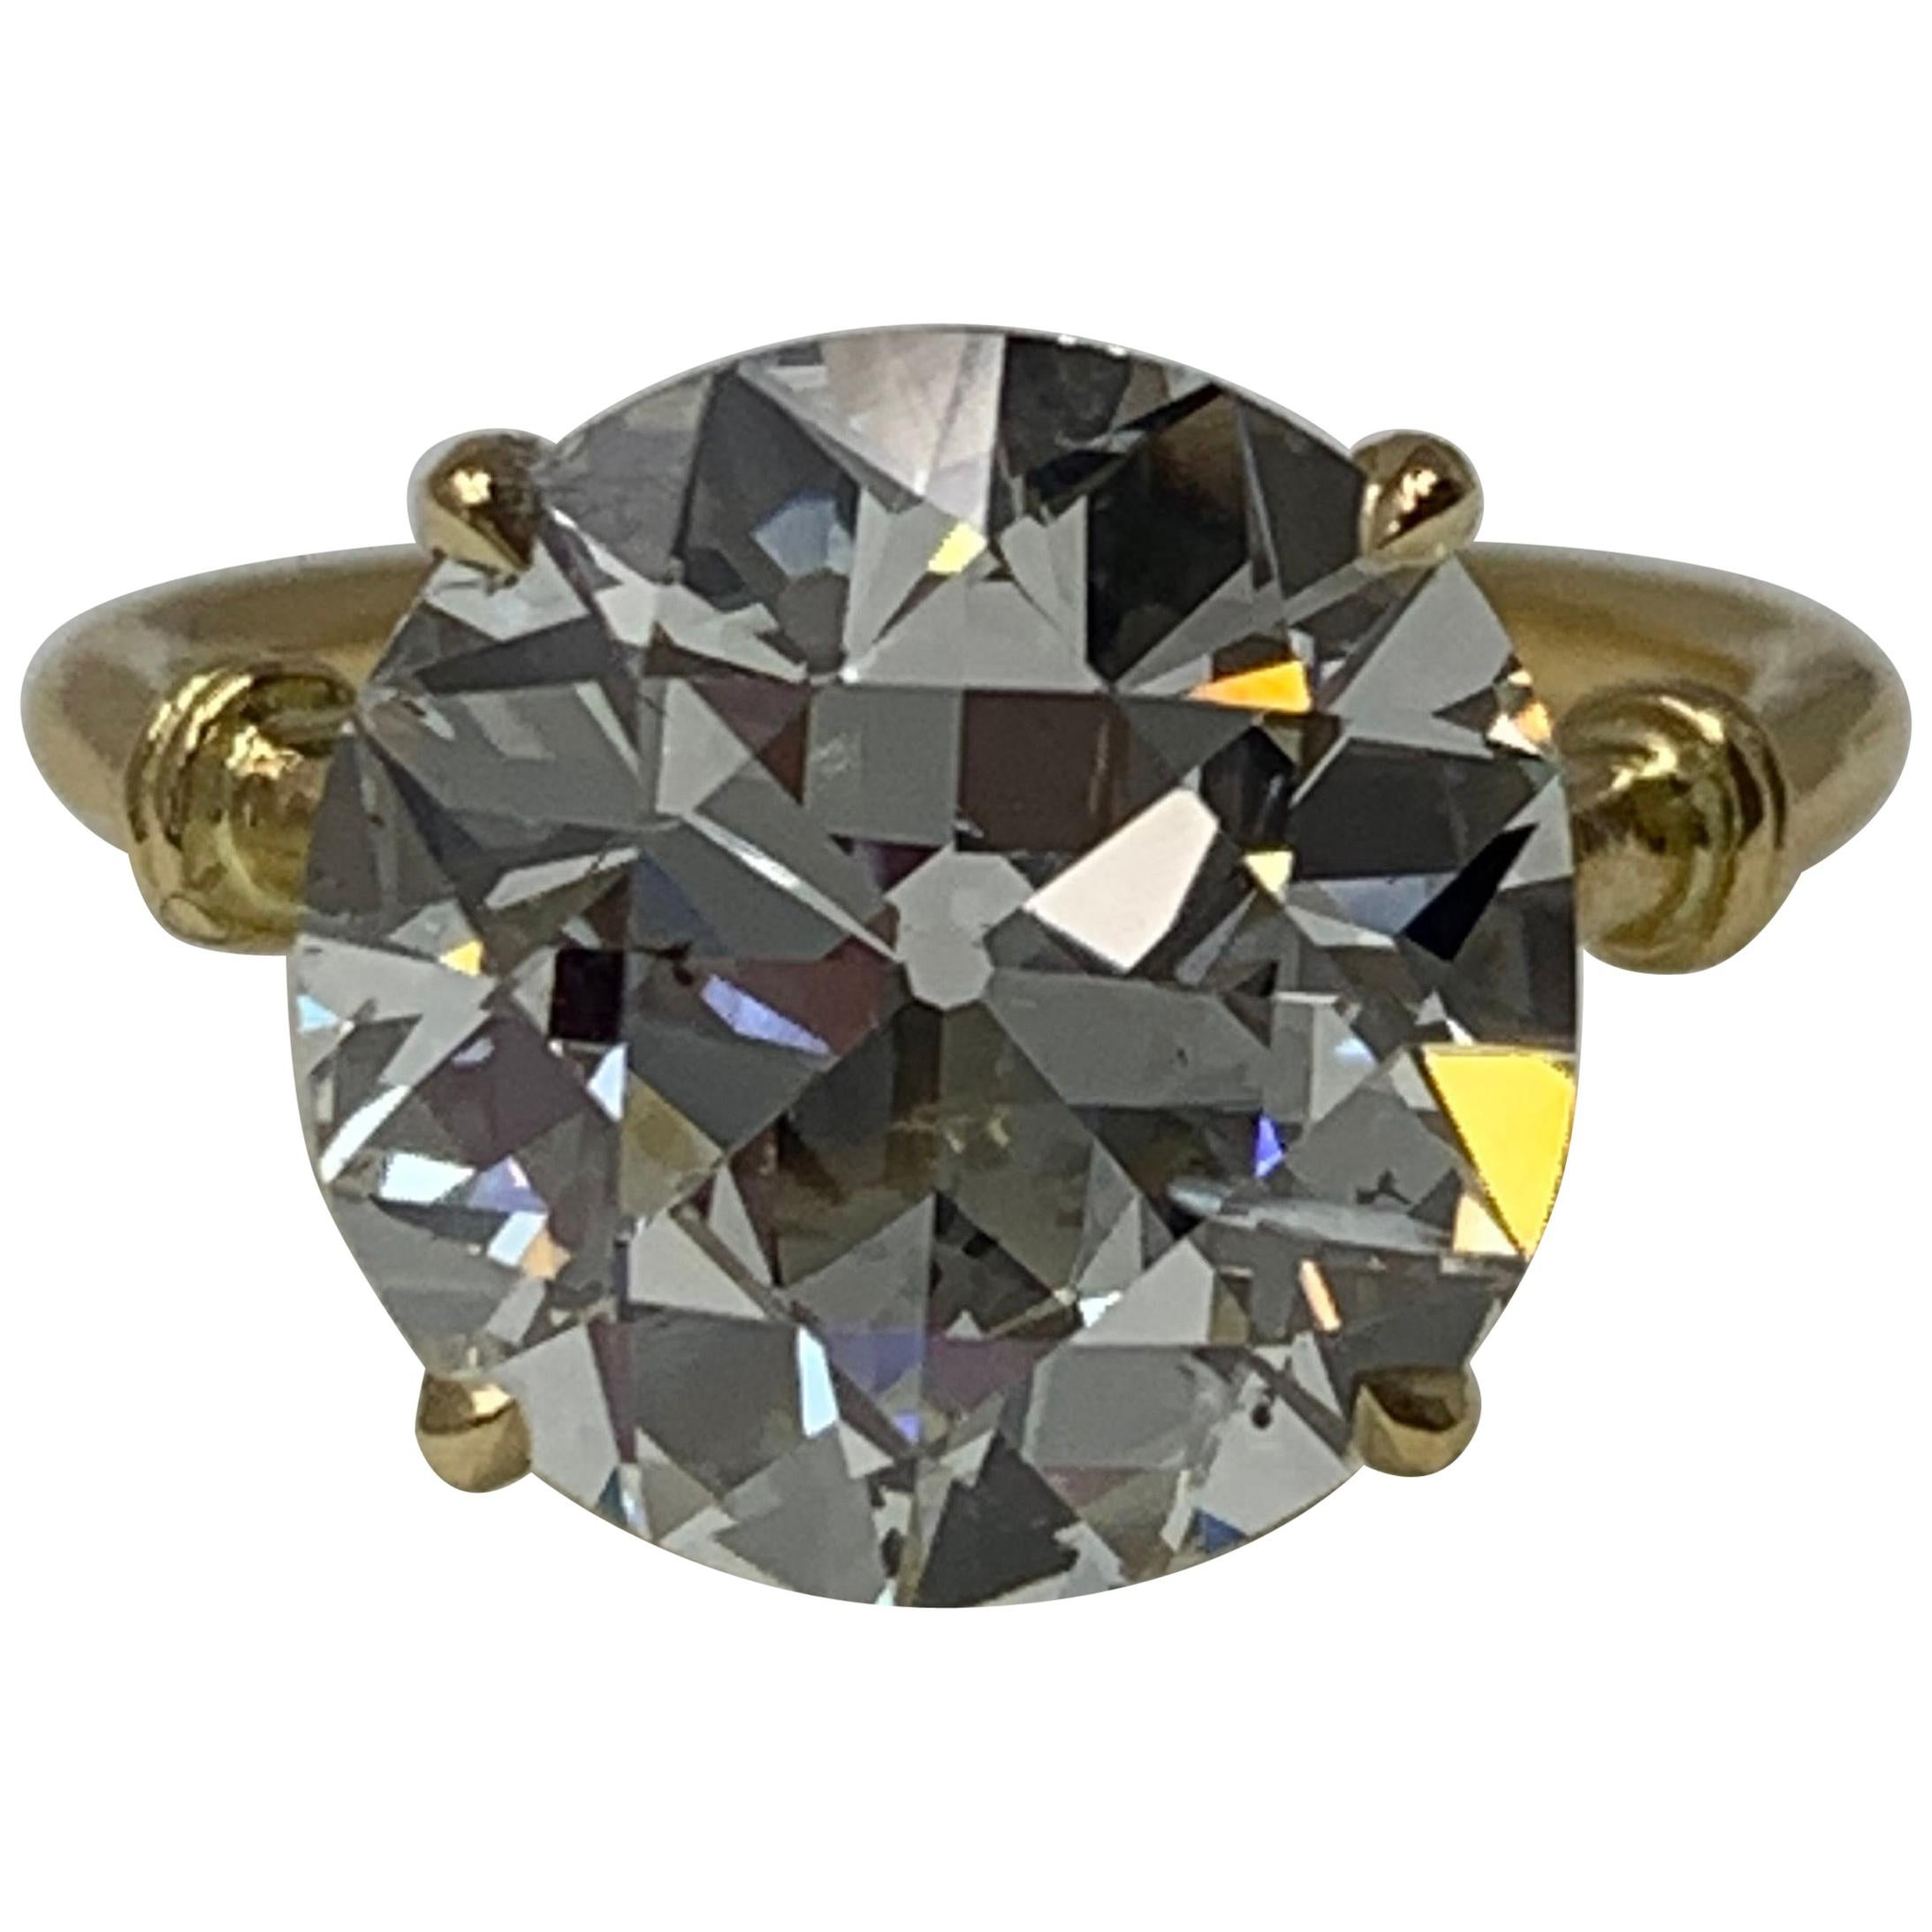 6.34 Carat Old European Cut Diamond Ring in 18 Karat Gold, GIA Certified.